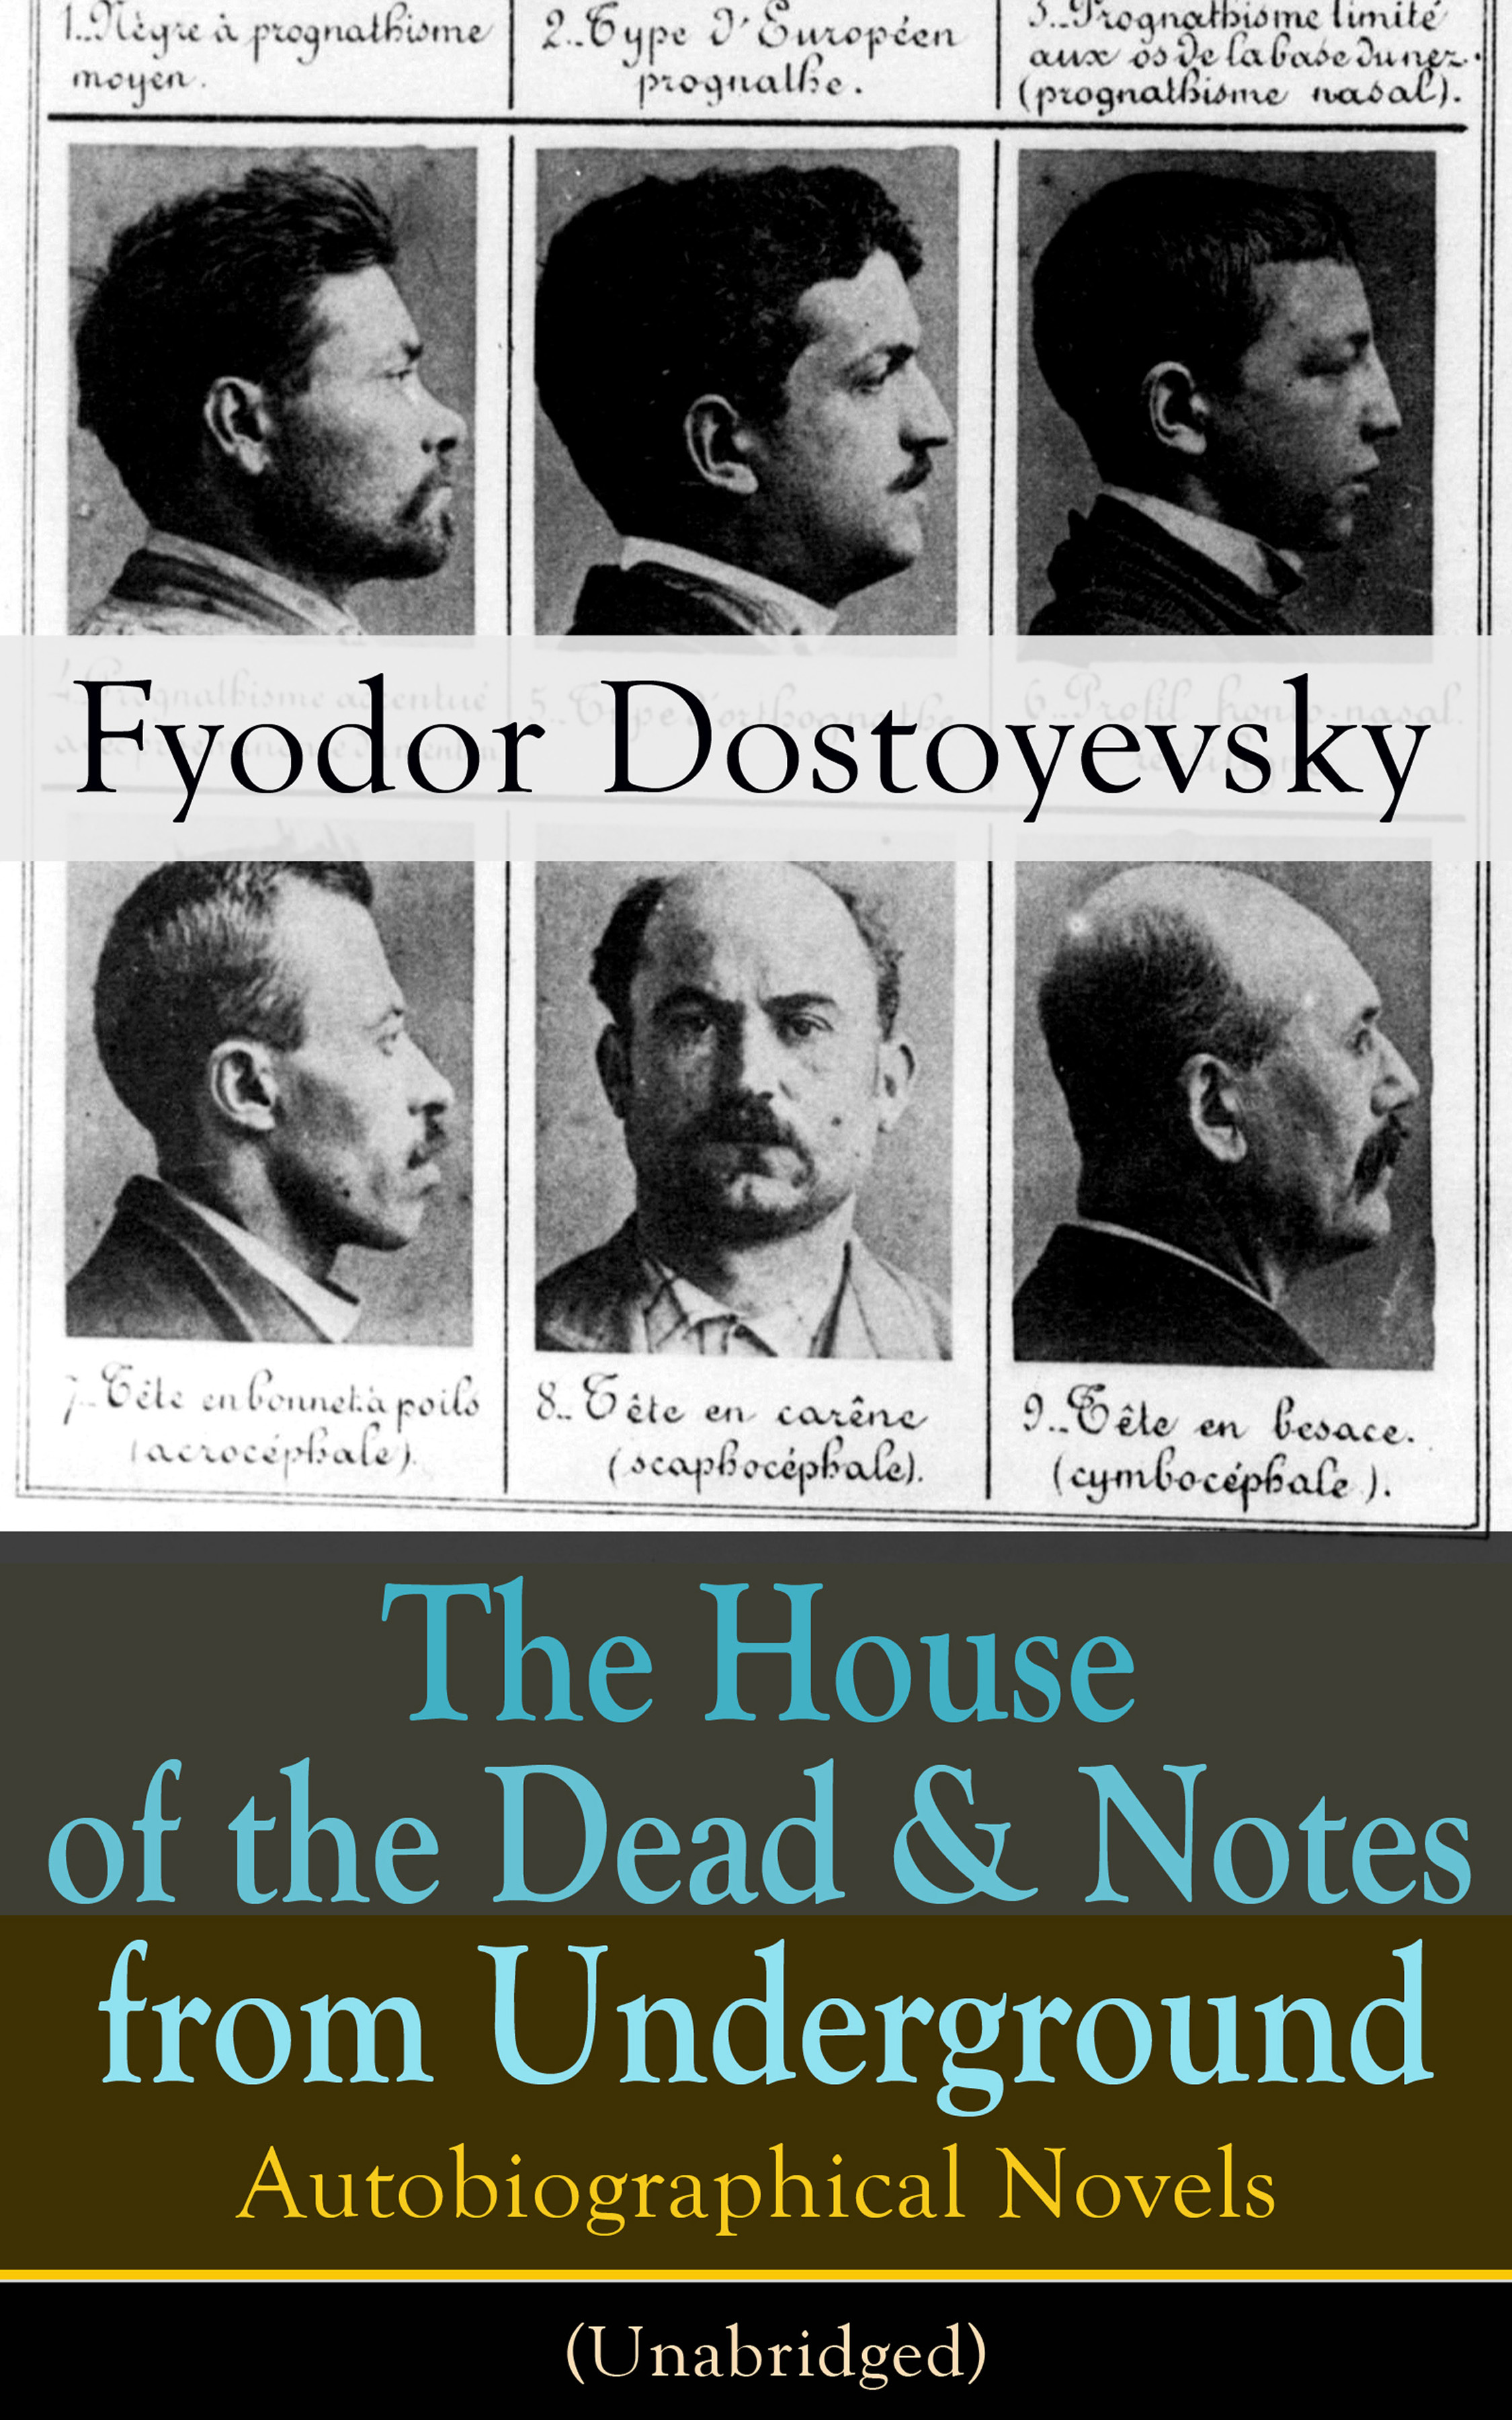 Федор Достоевский The House of the Dead & Notes from Underground: Autobiographical Novels of Fyodor Dostoyevsky (Unabridged)